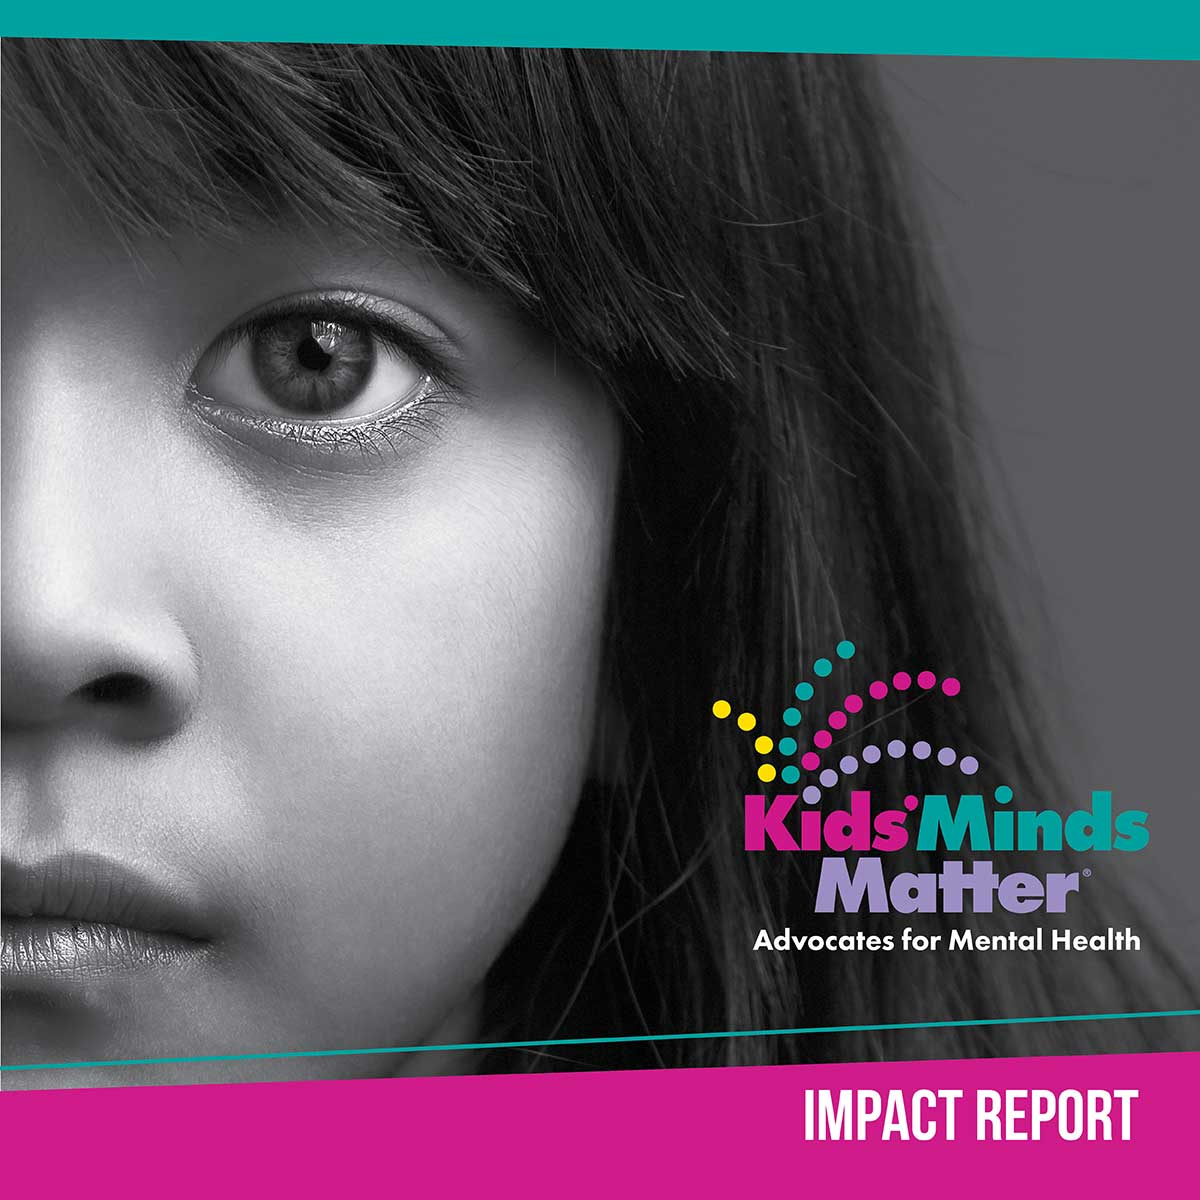 Kids Minds Matter Impact Report Cover Image